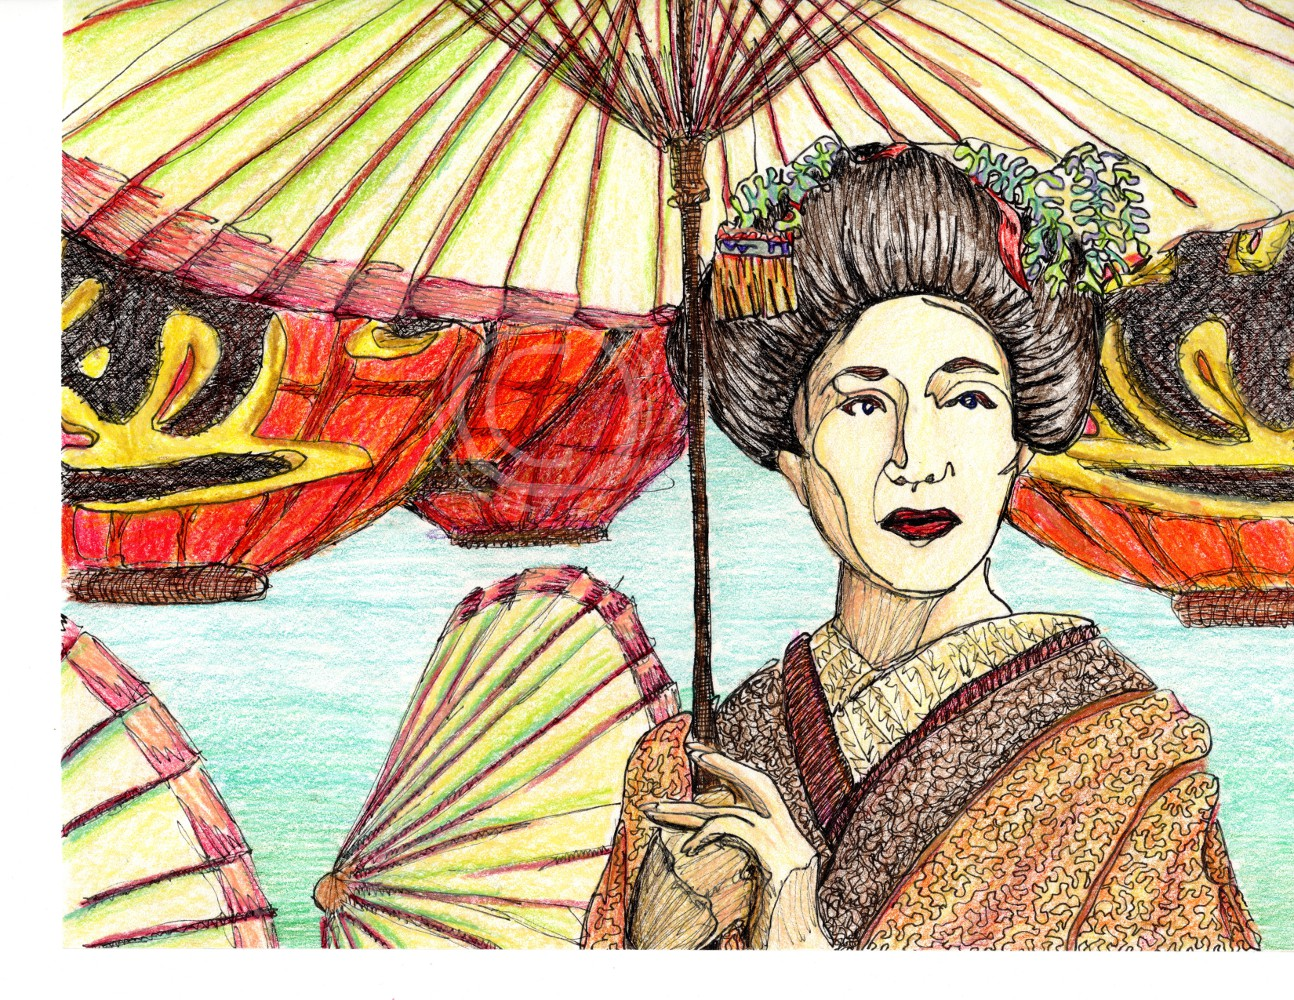 This drawing, based off of a National Geographic photo, shows a woman in Gesha makeup and hair dress holding a paper parasol with red paper lanterns behind her. Ink and Color Pencil on Paper